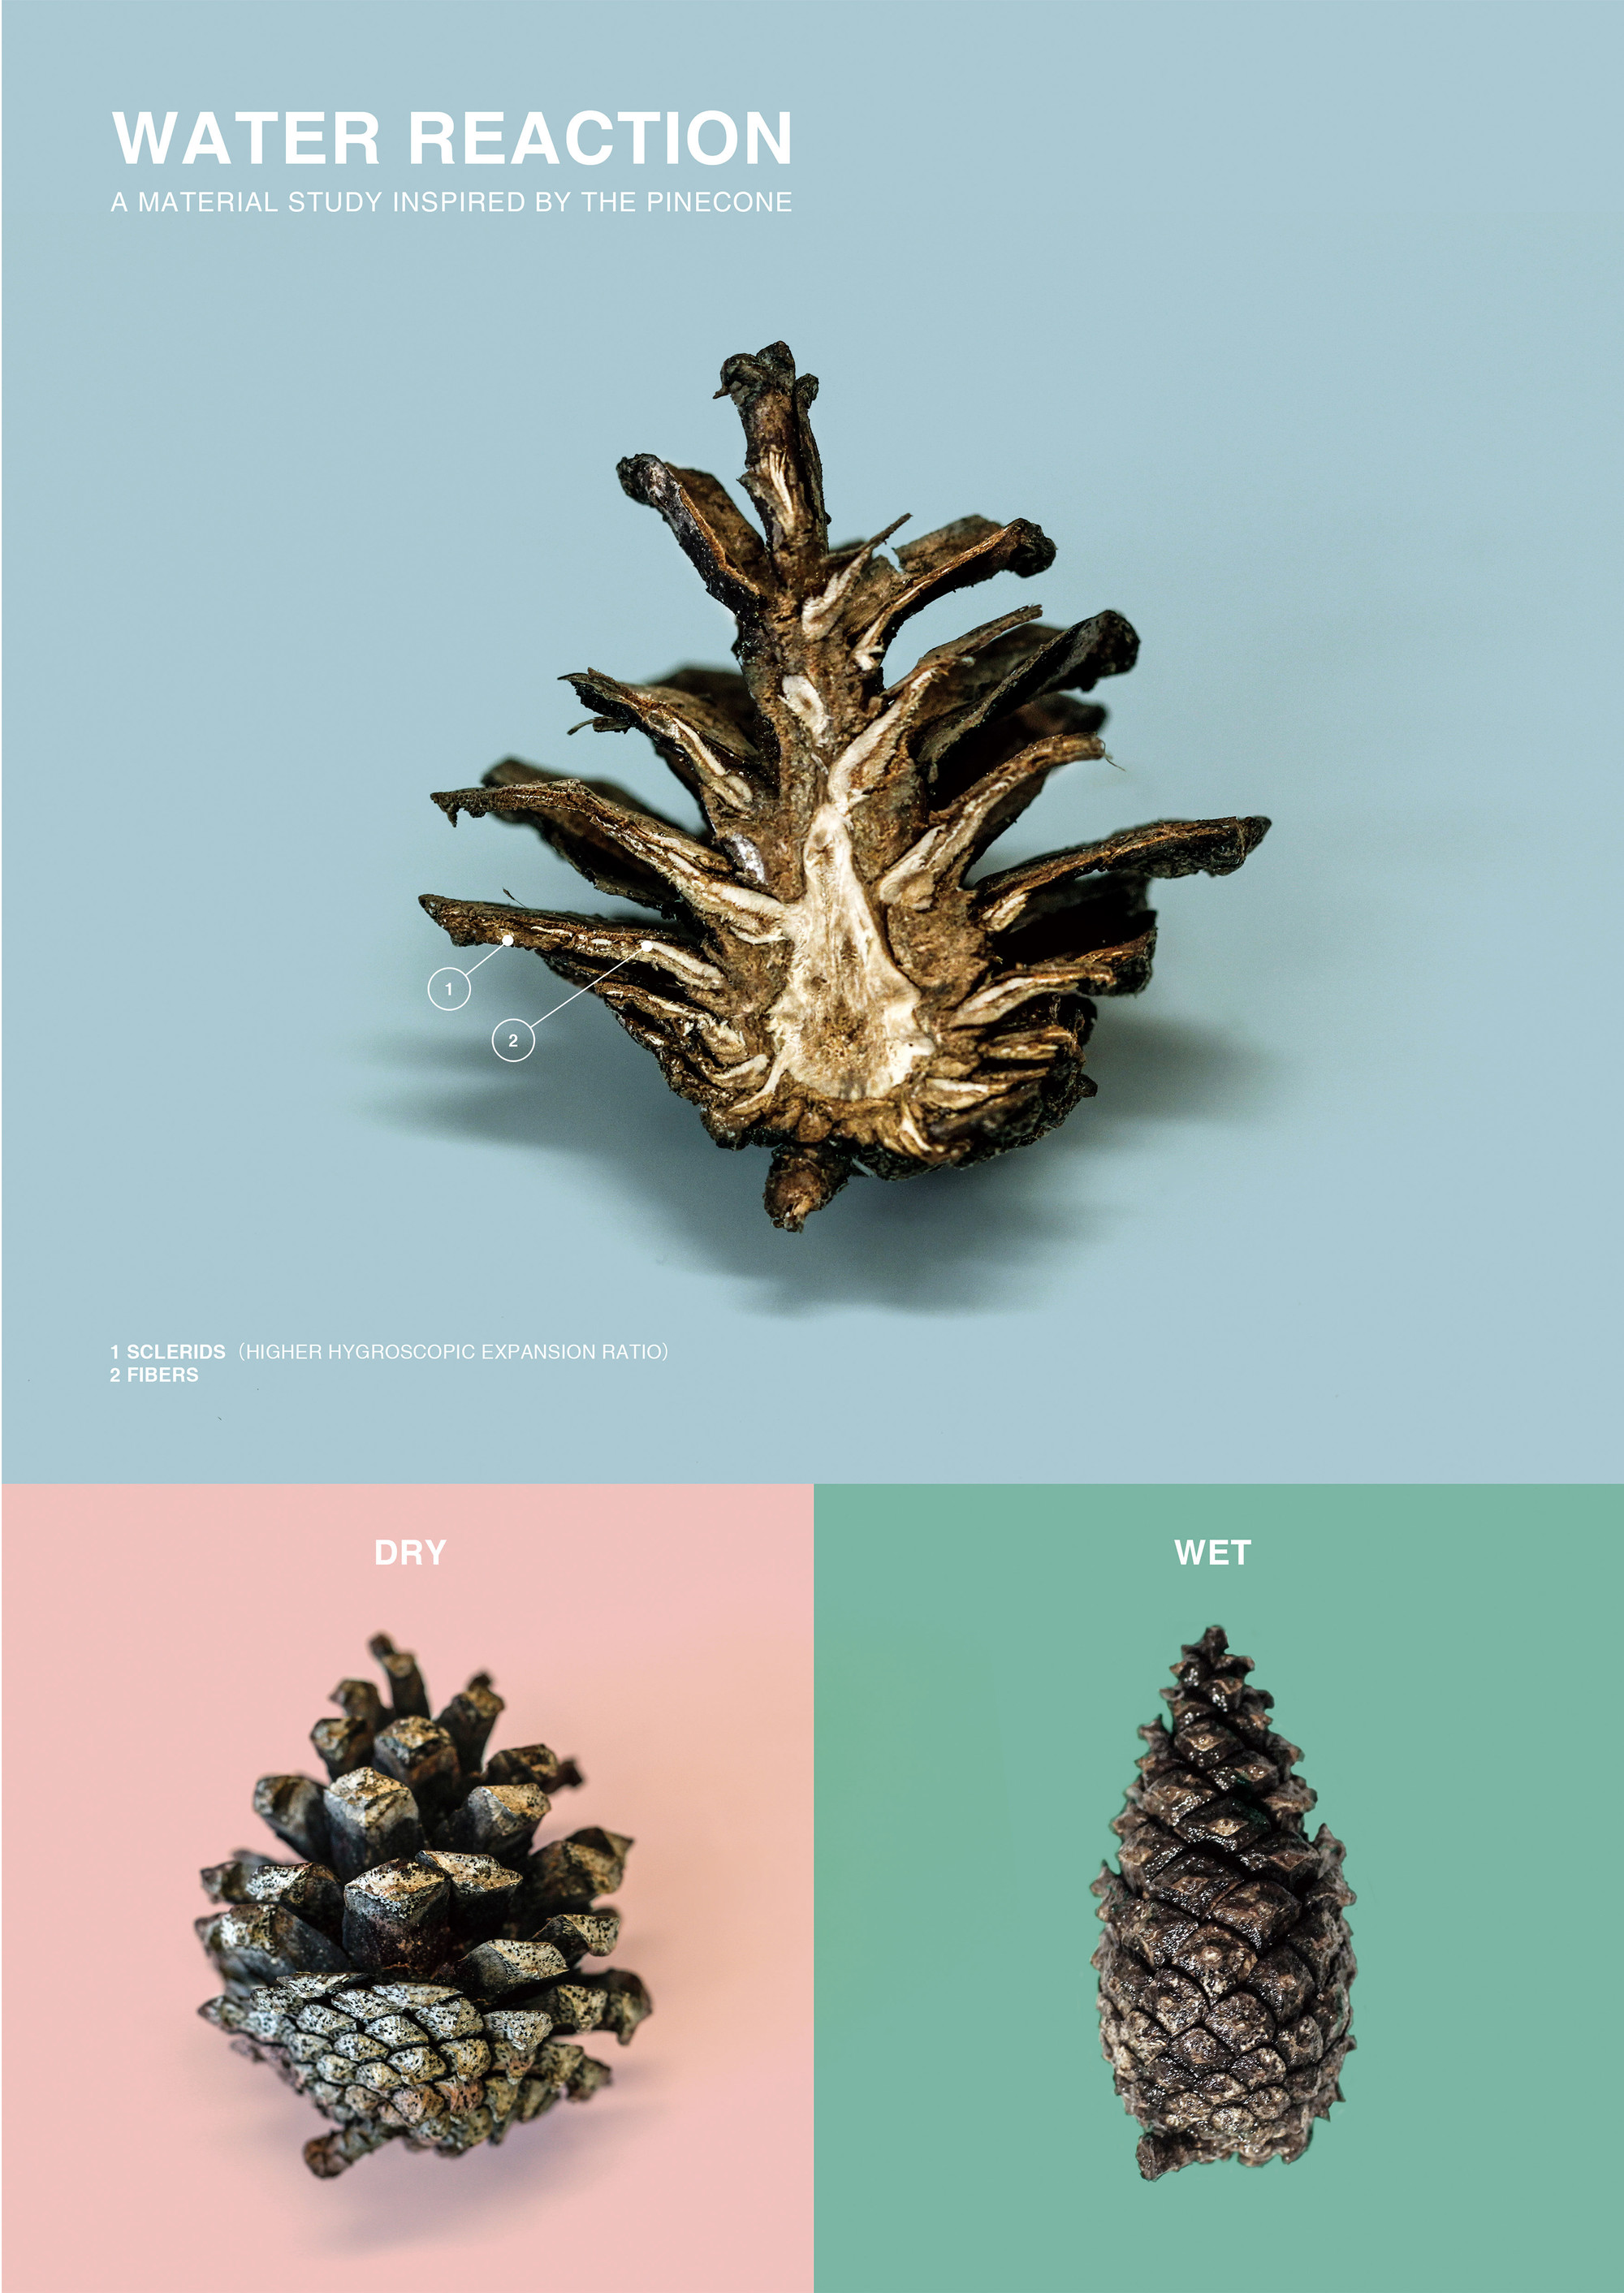 Building Elements Come Alive with this Pinecone-Inspired Material ...